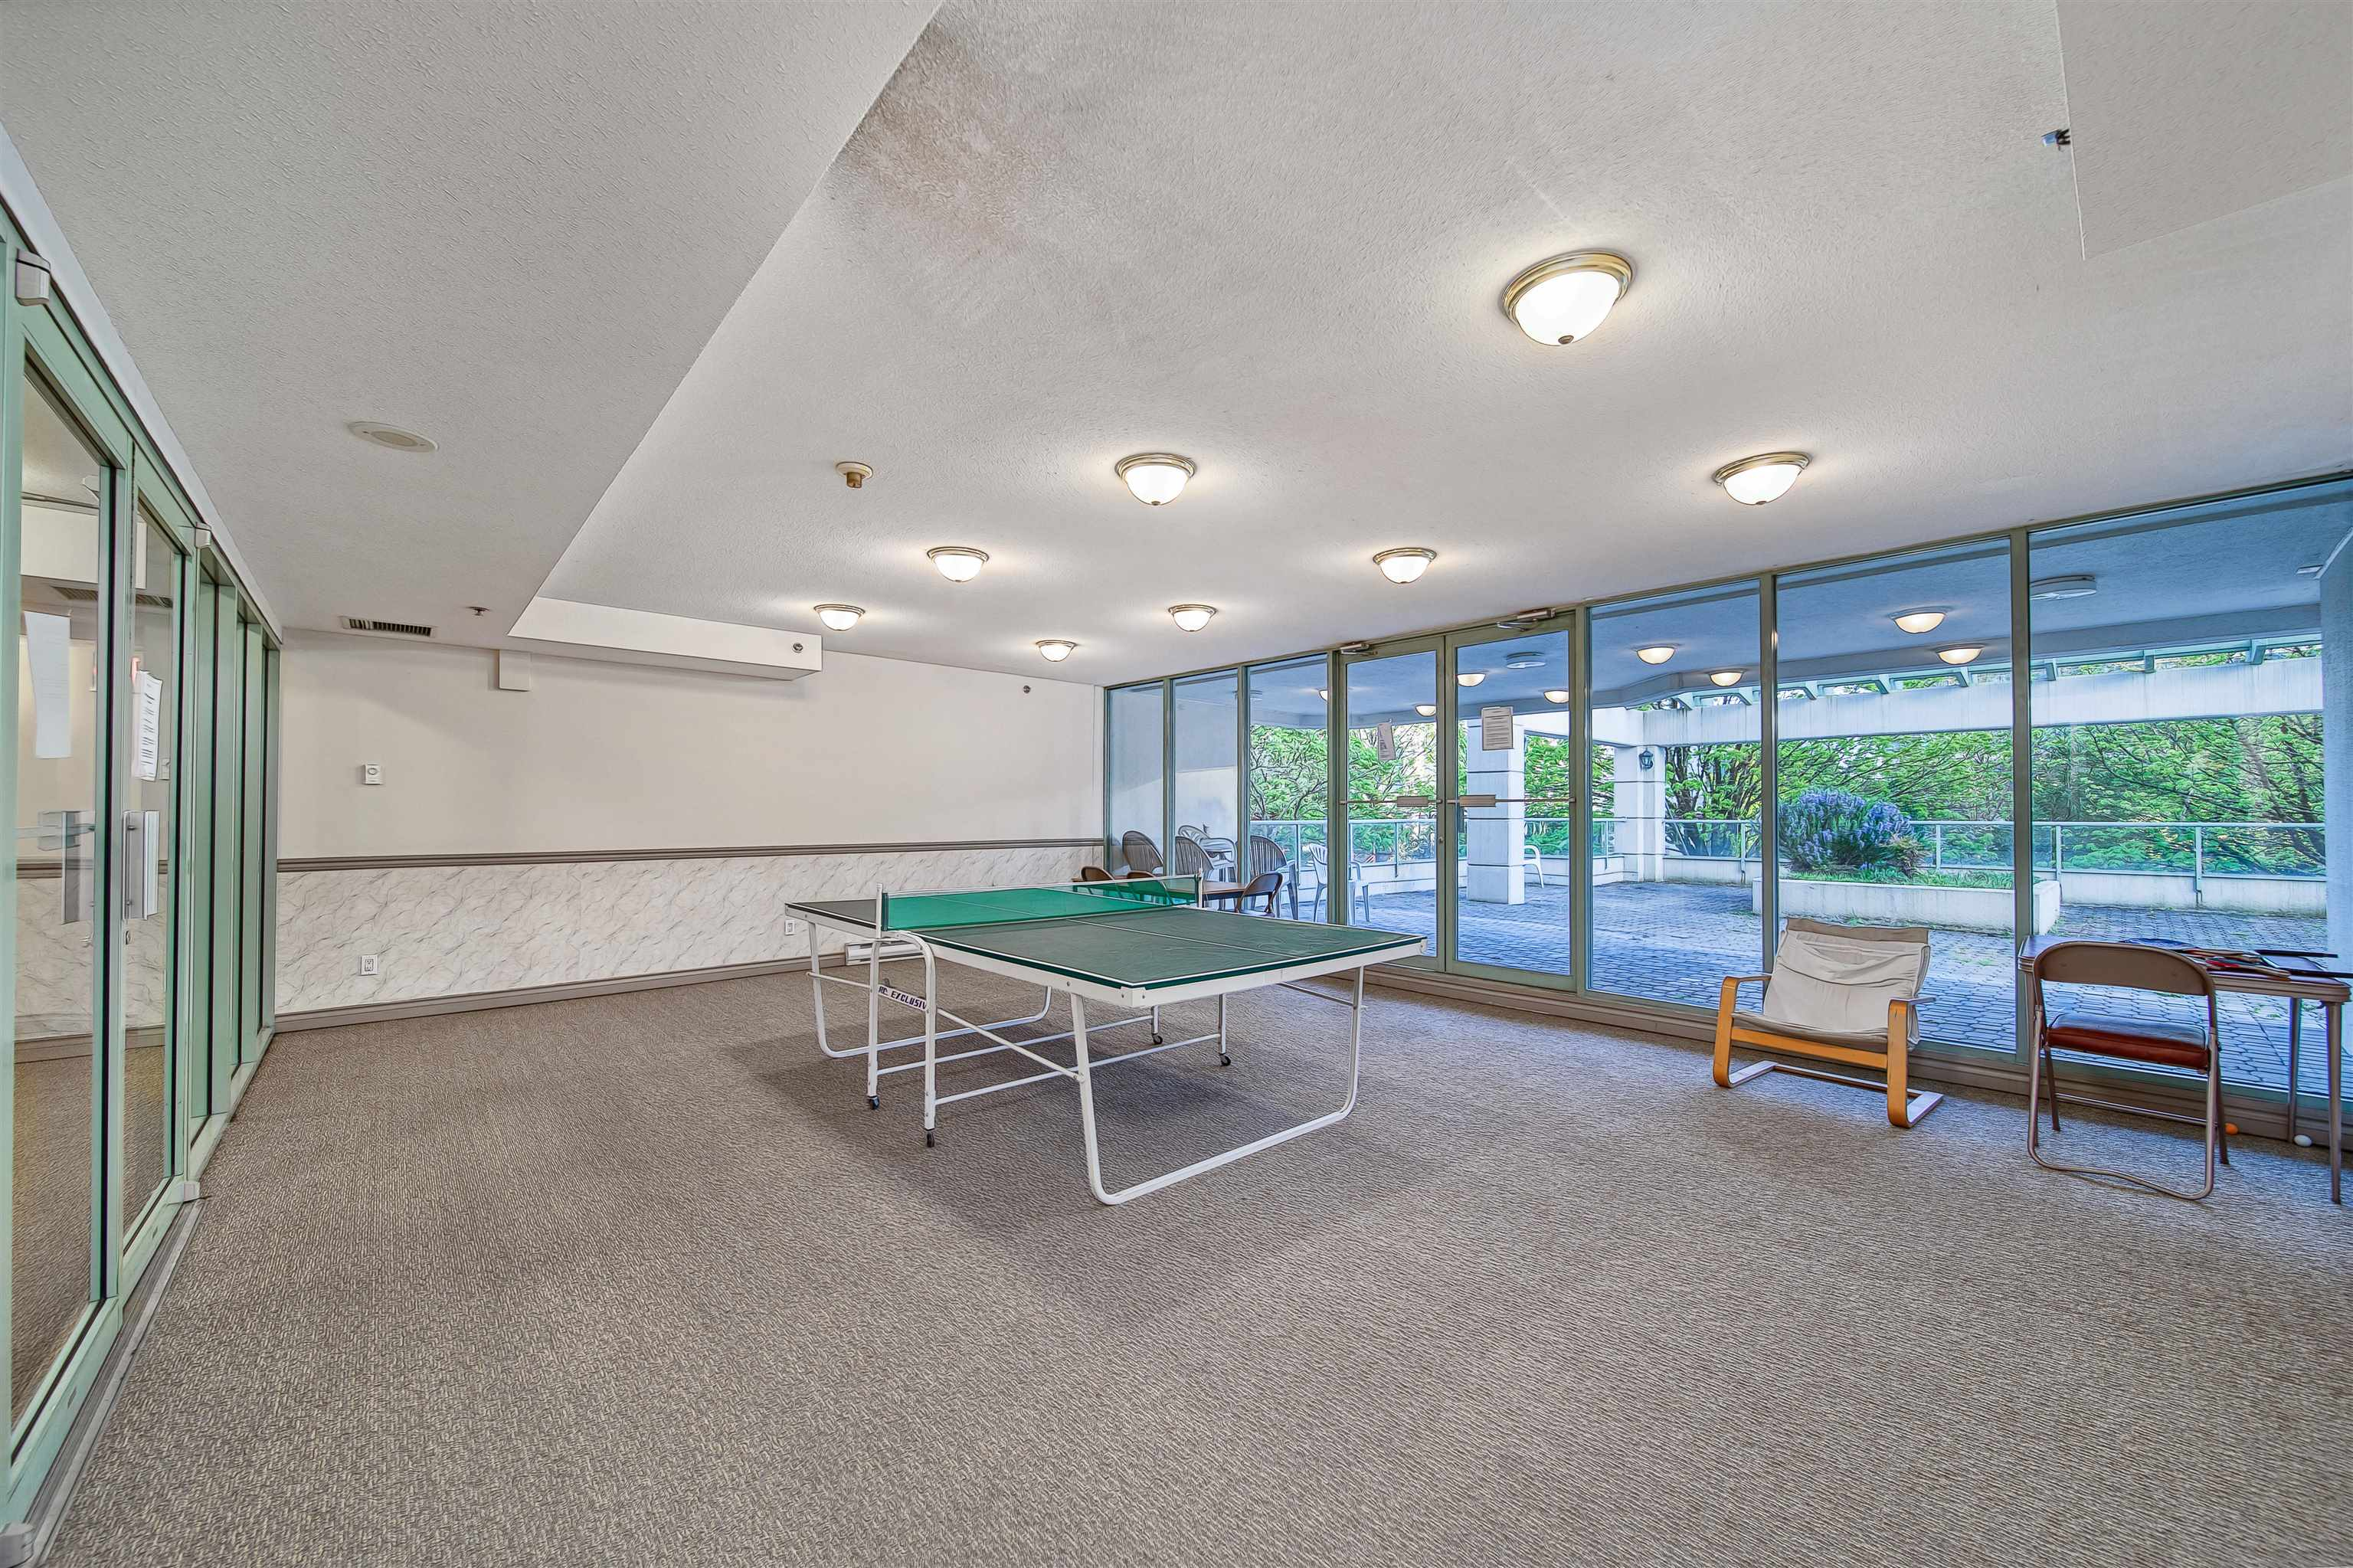 303 140 E 14TH STREET - Central Lonsdale Apartment/Condo for sale, 1 Bedroom (R2618094) - #10